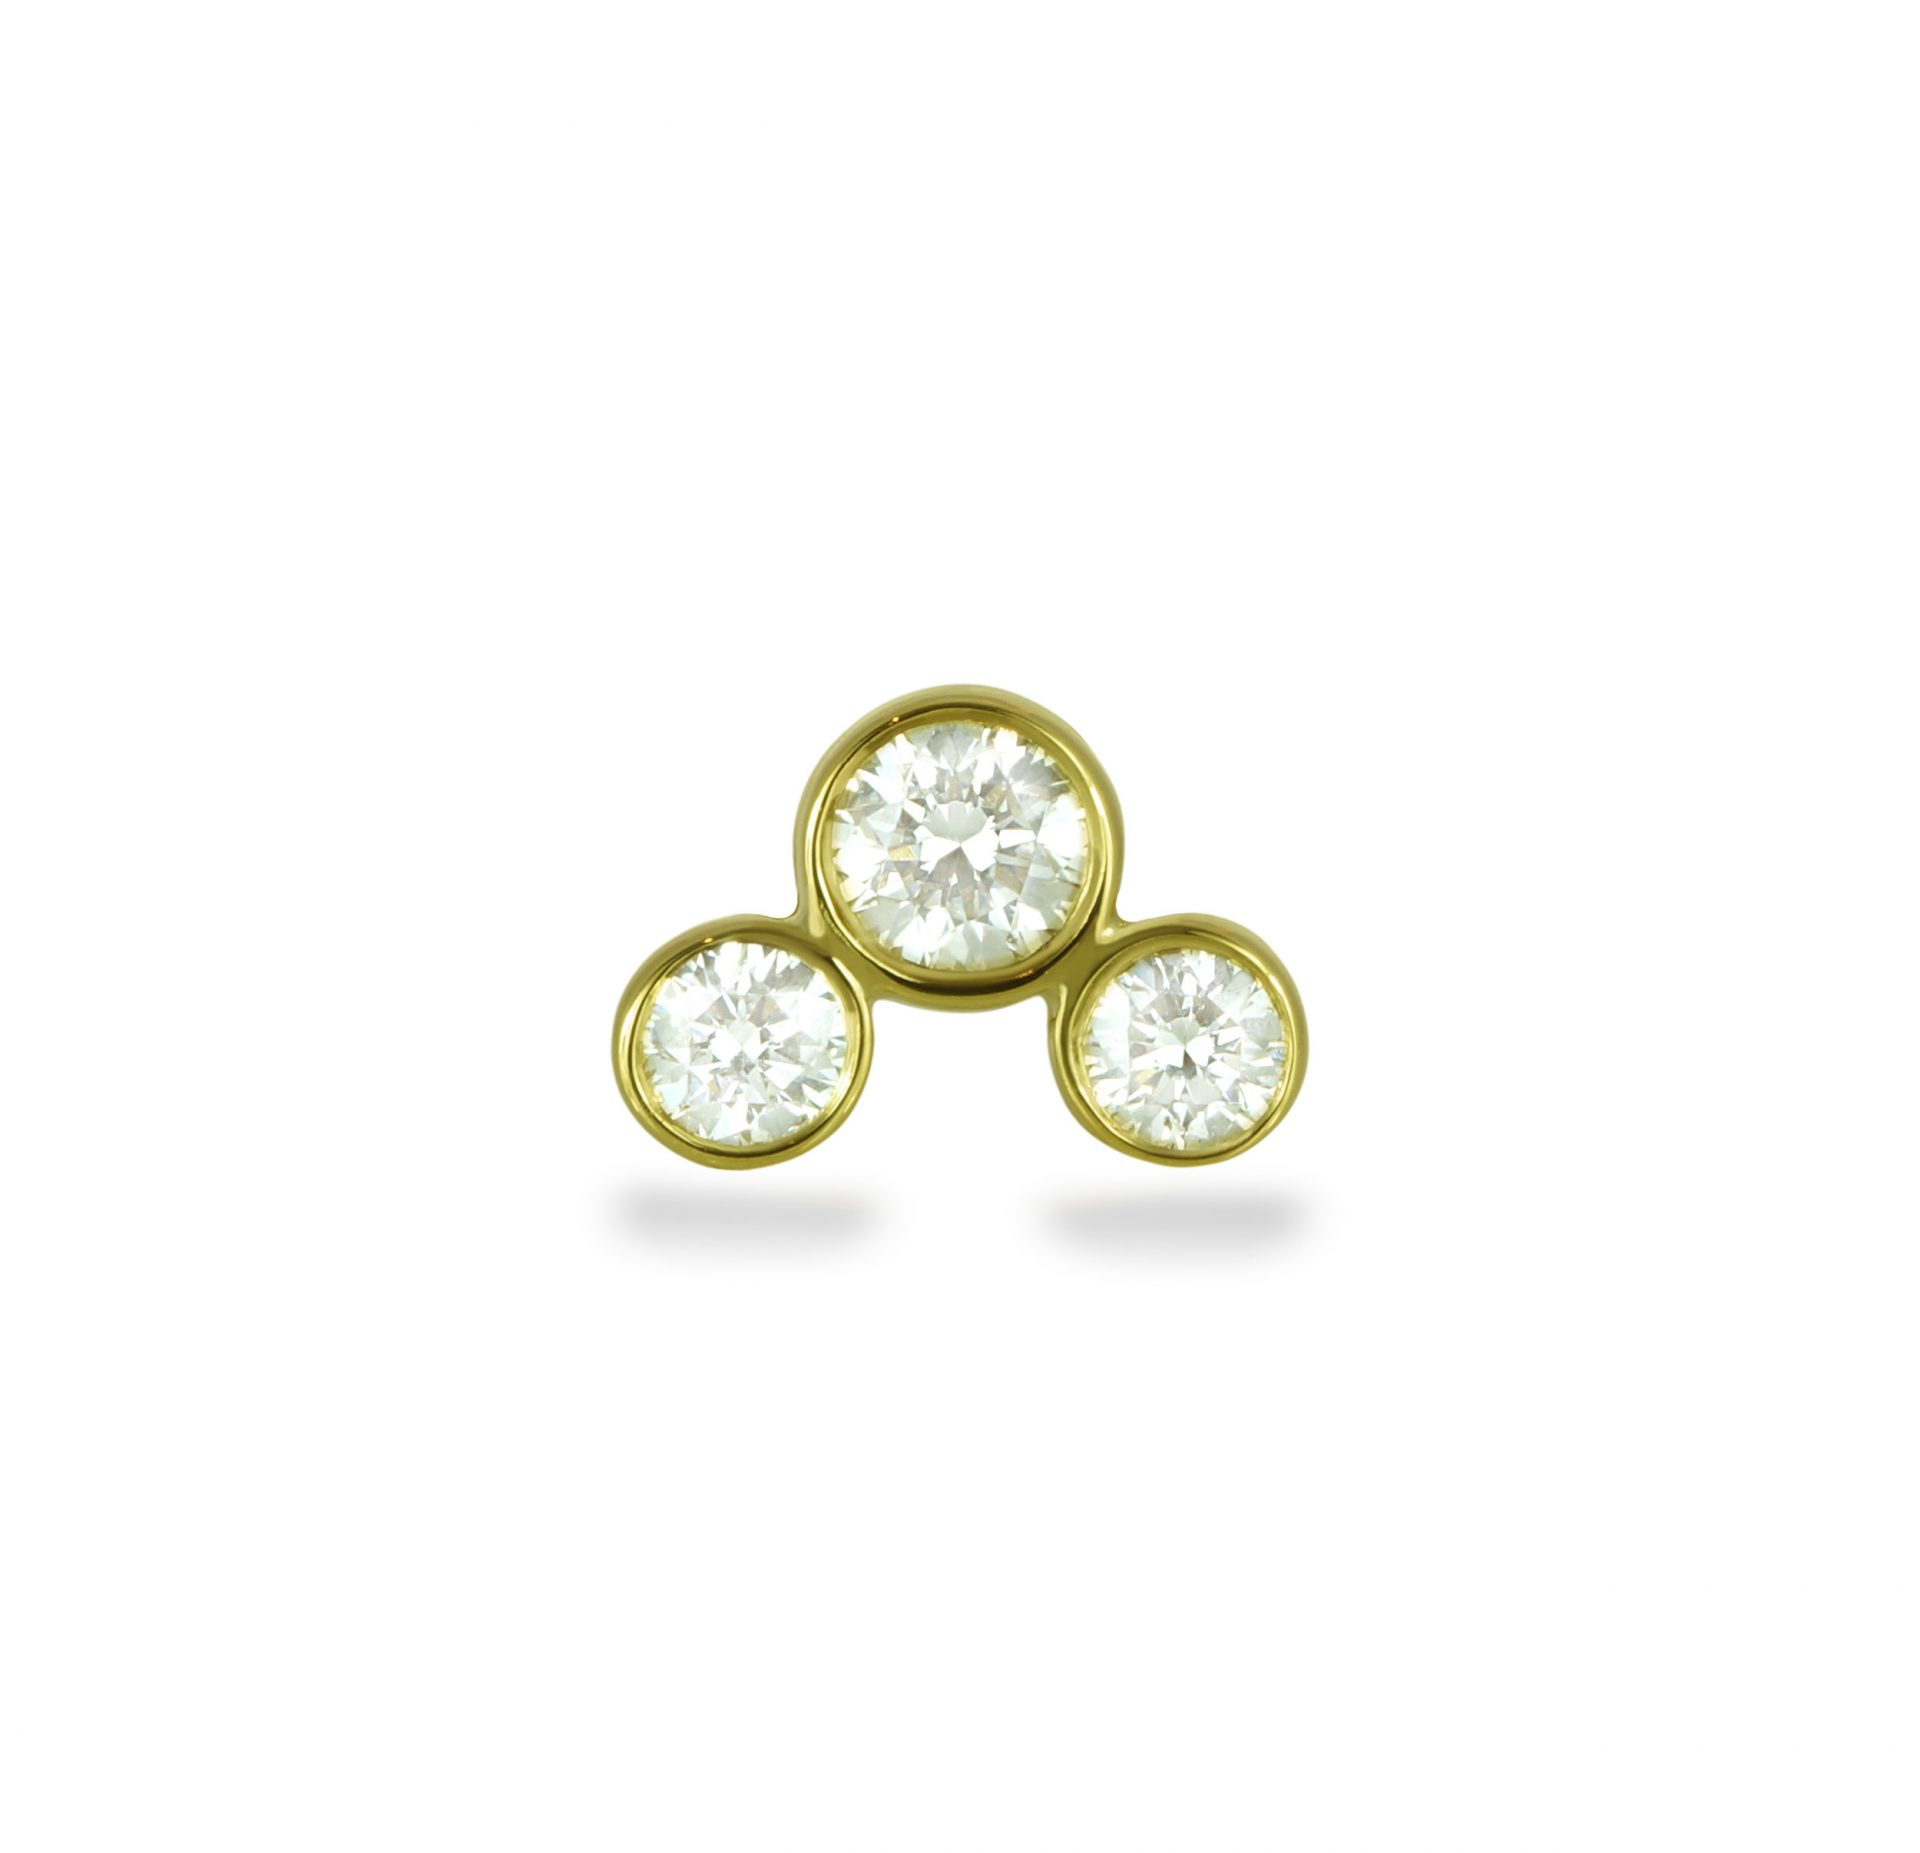 highend-piercing-diamond-piercing-studs-screw-backs-gold-buy-online-lena-cohen-uk